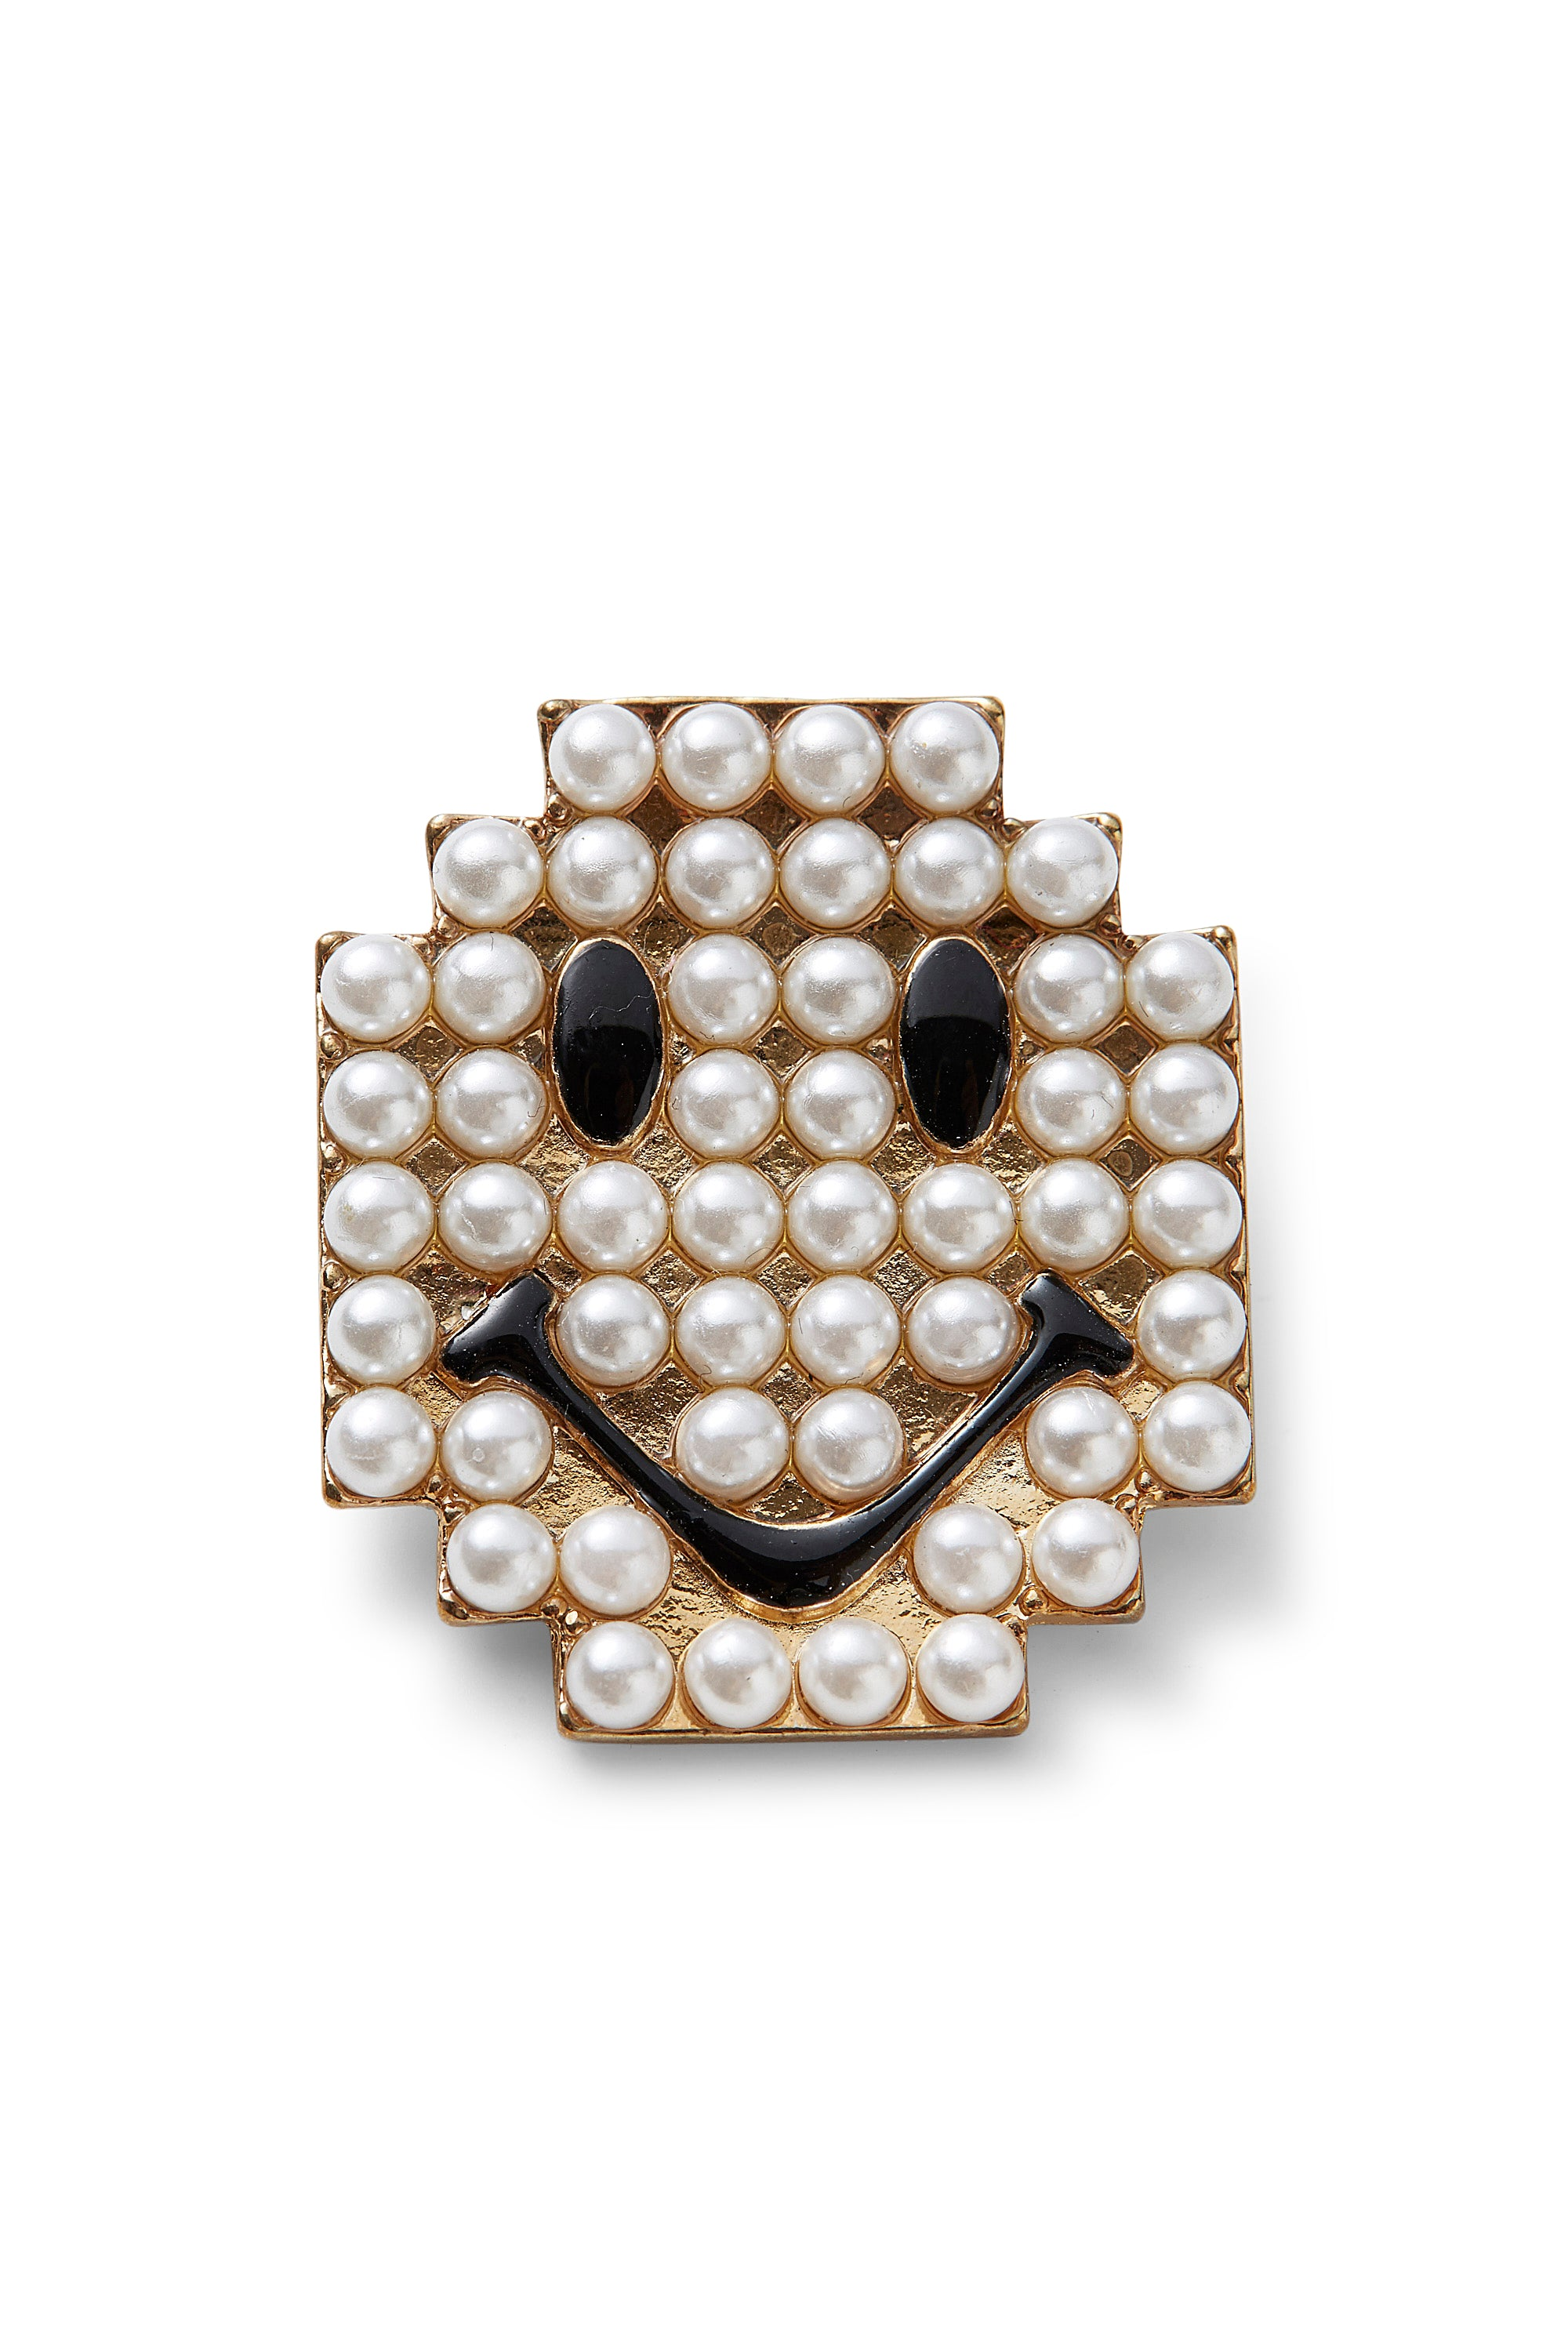 Vintage<br>90's faux pearl smiley face brooch